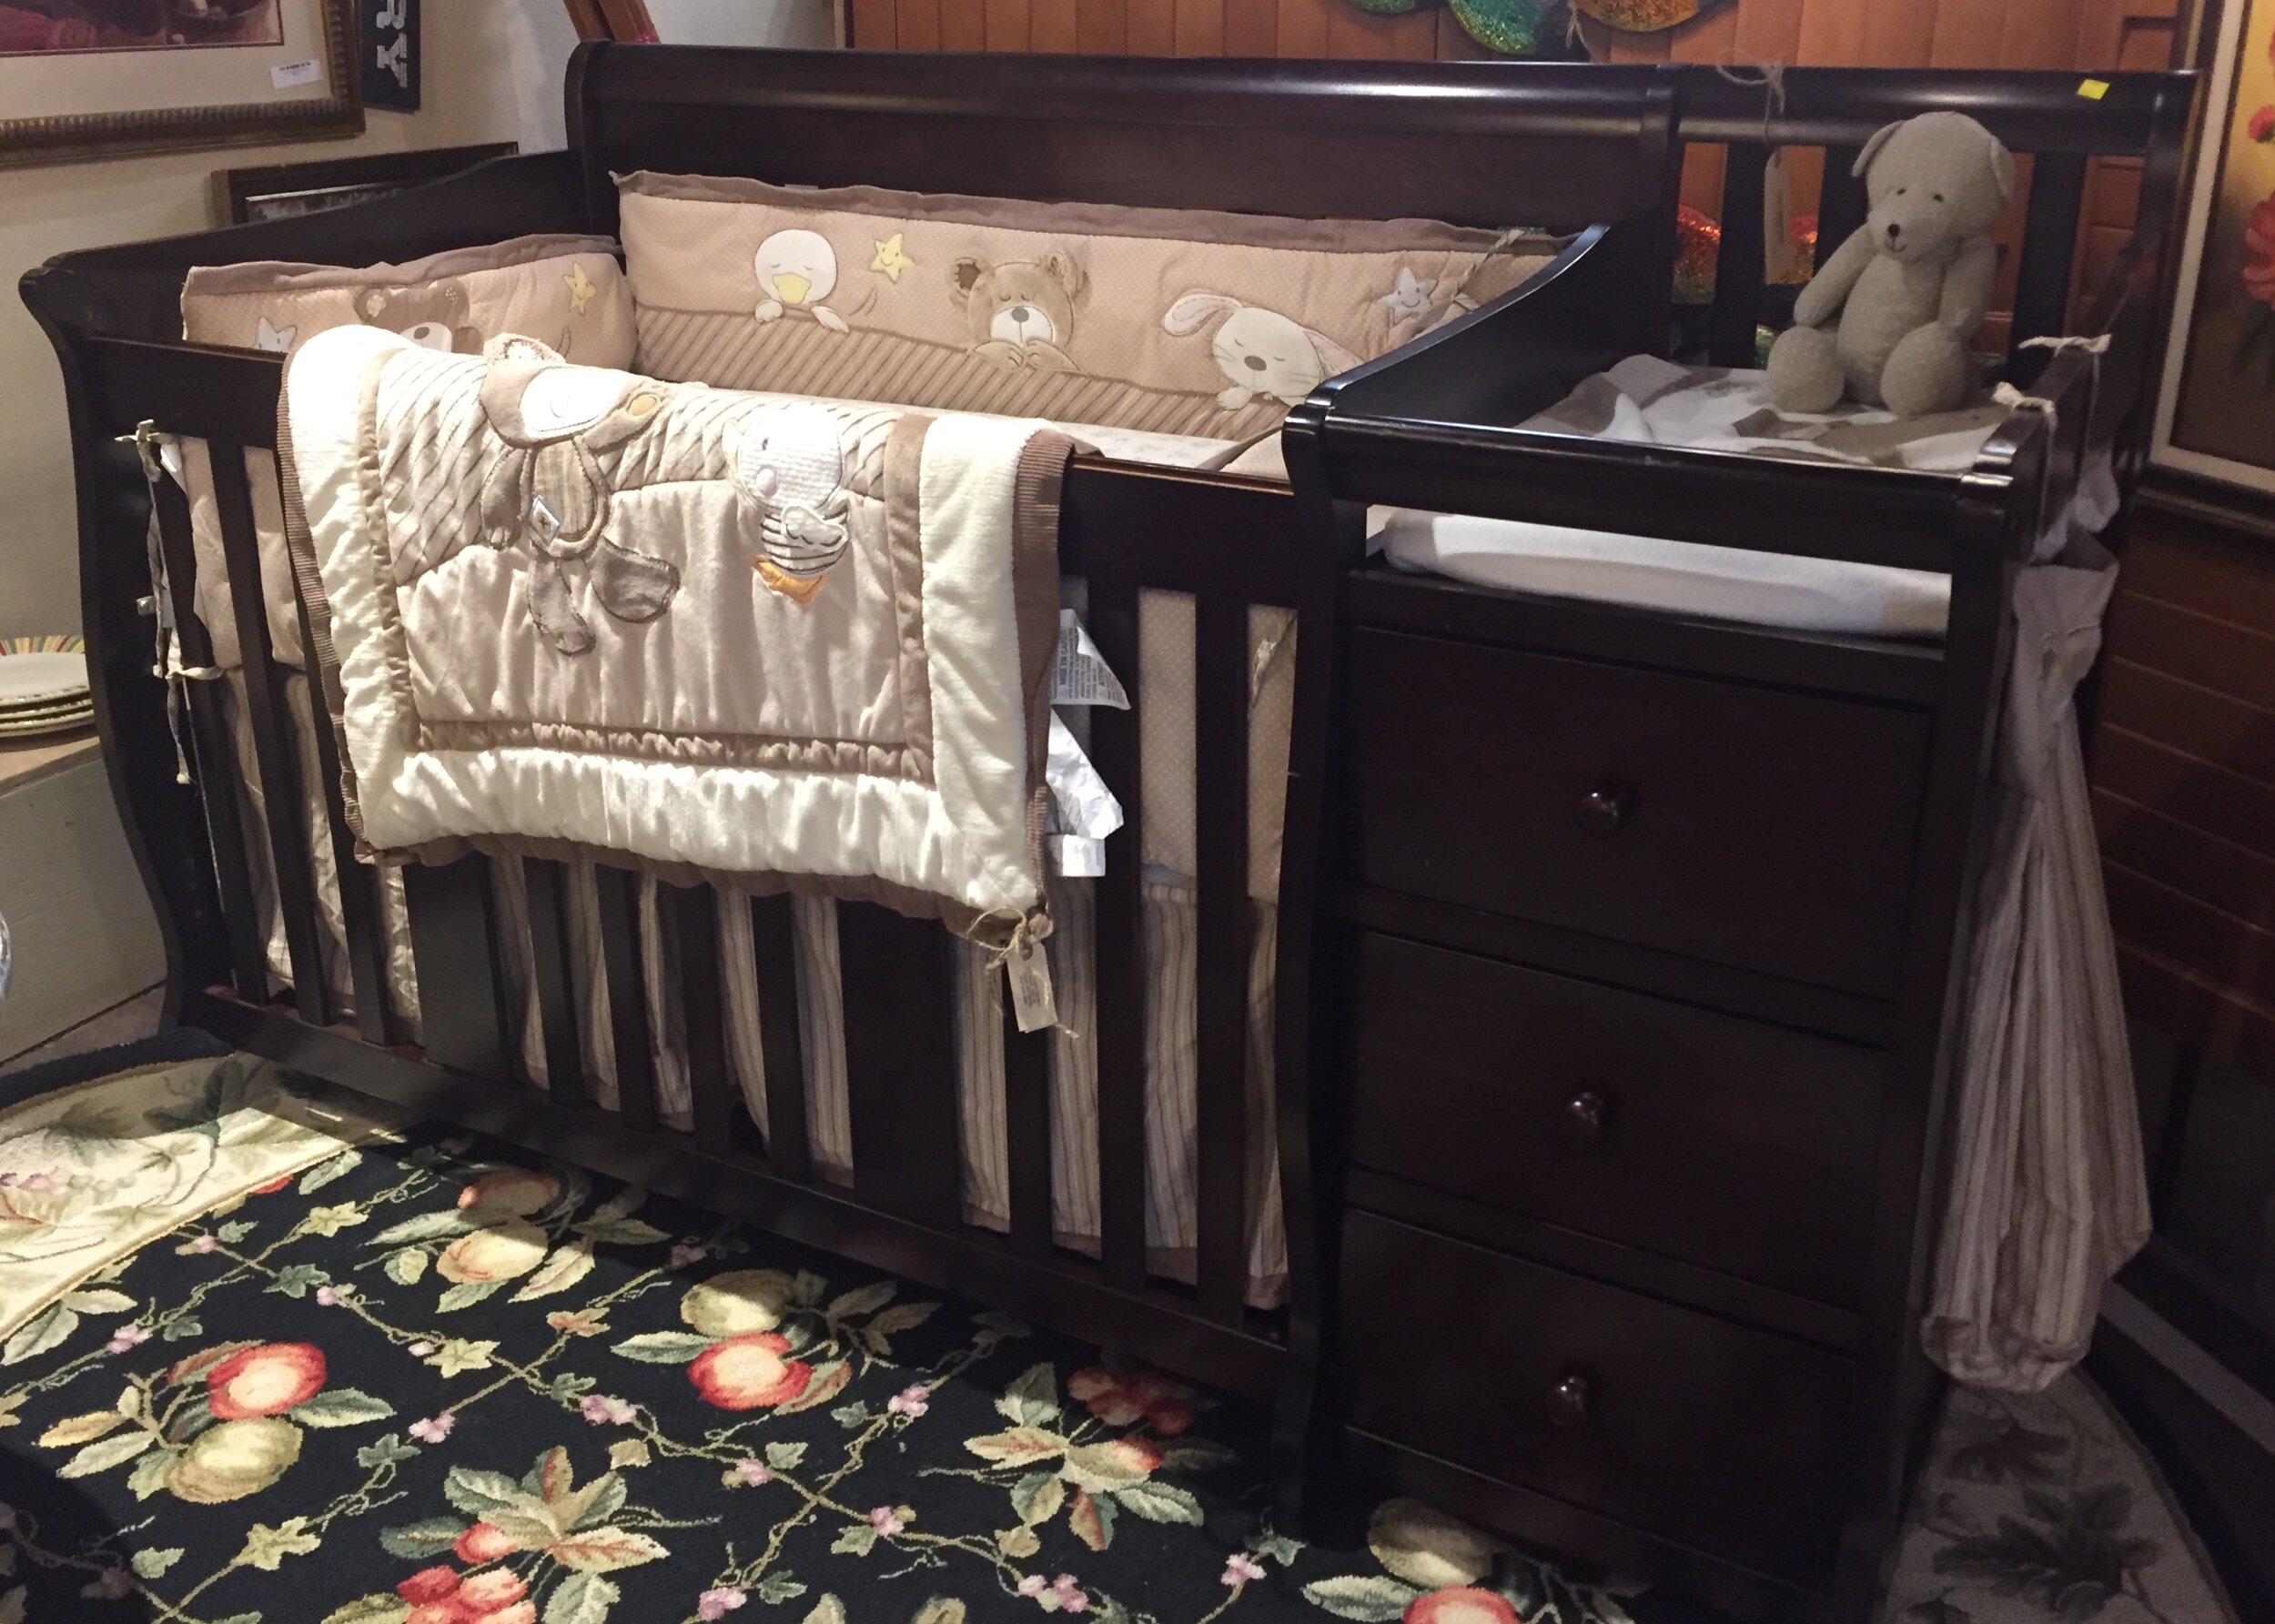 Baby Bed with Changing Table $249.95 - C1084 24352